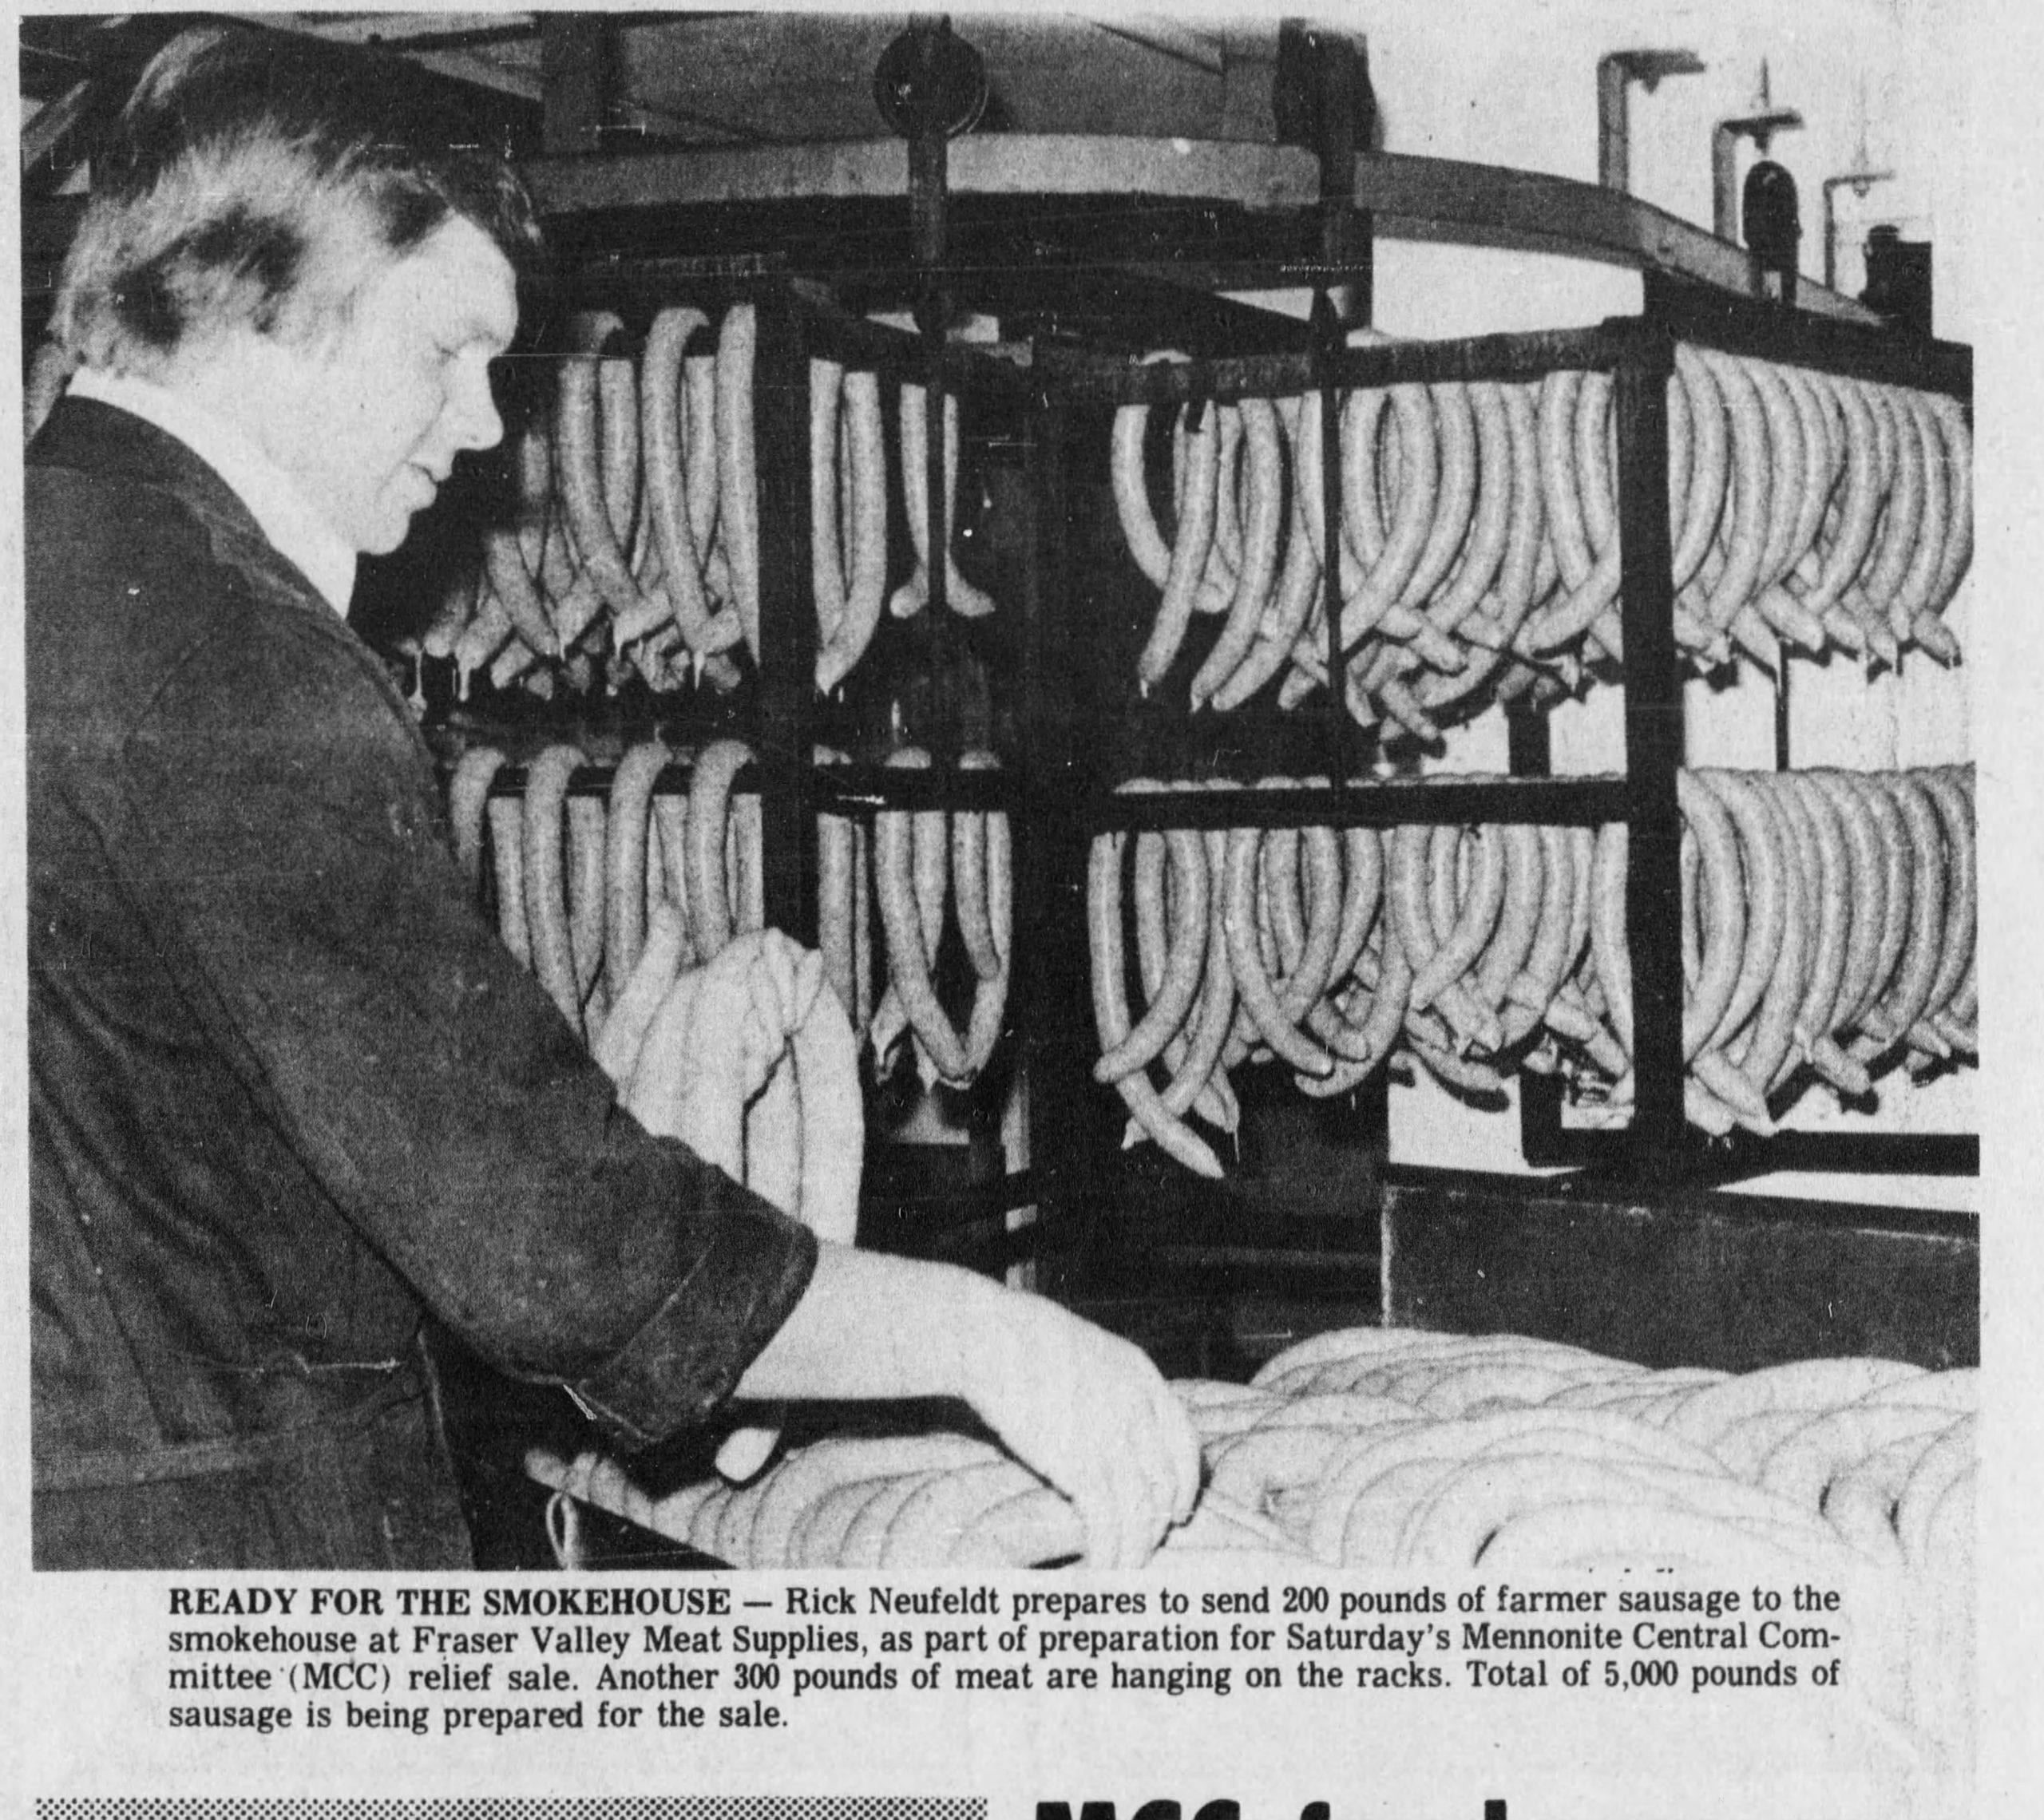 Fraser Valley Meats Chilliwack Butcher Shop History 1977